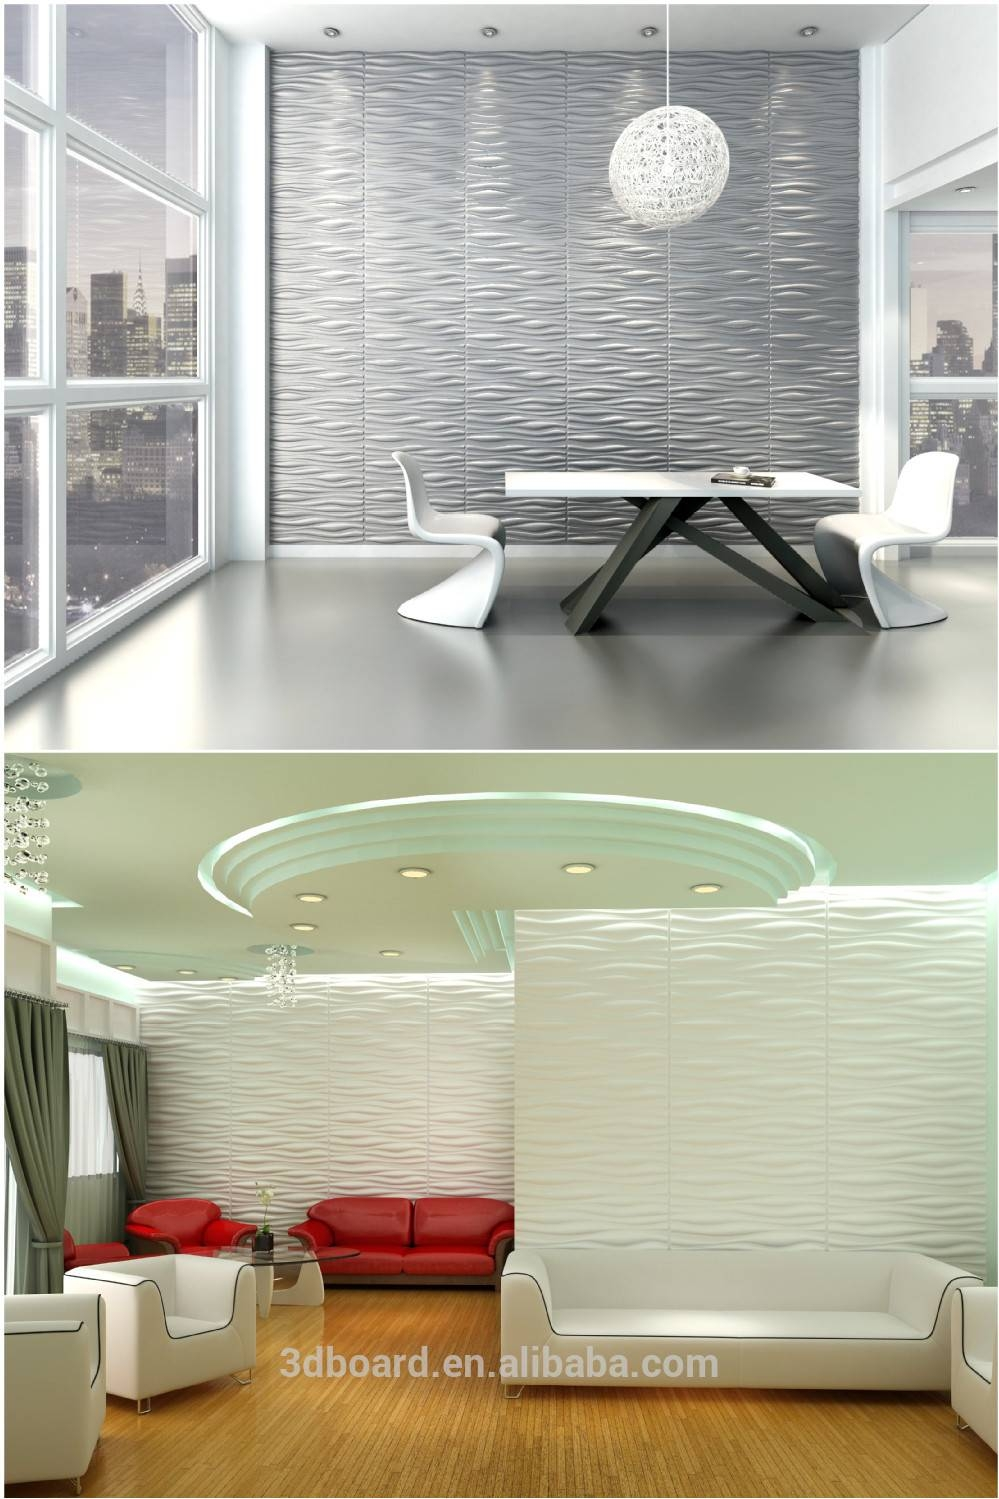 Clear Plastic Interior 3D Textured Wall Panels Plant Fiver Wall 3D Within Current 3D Plastic Wall Panels (View 10 of 20)